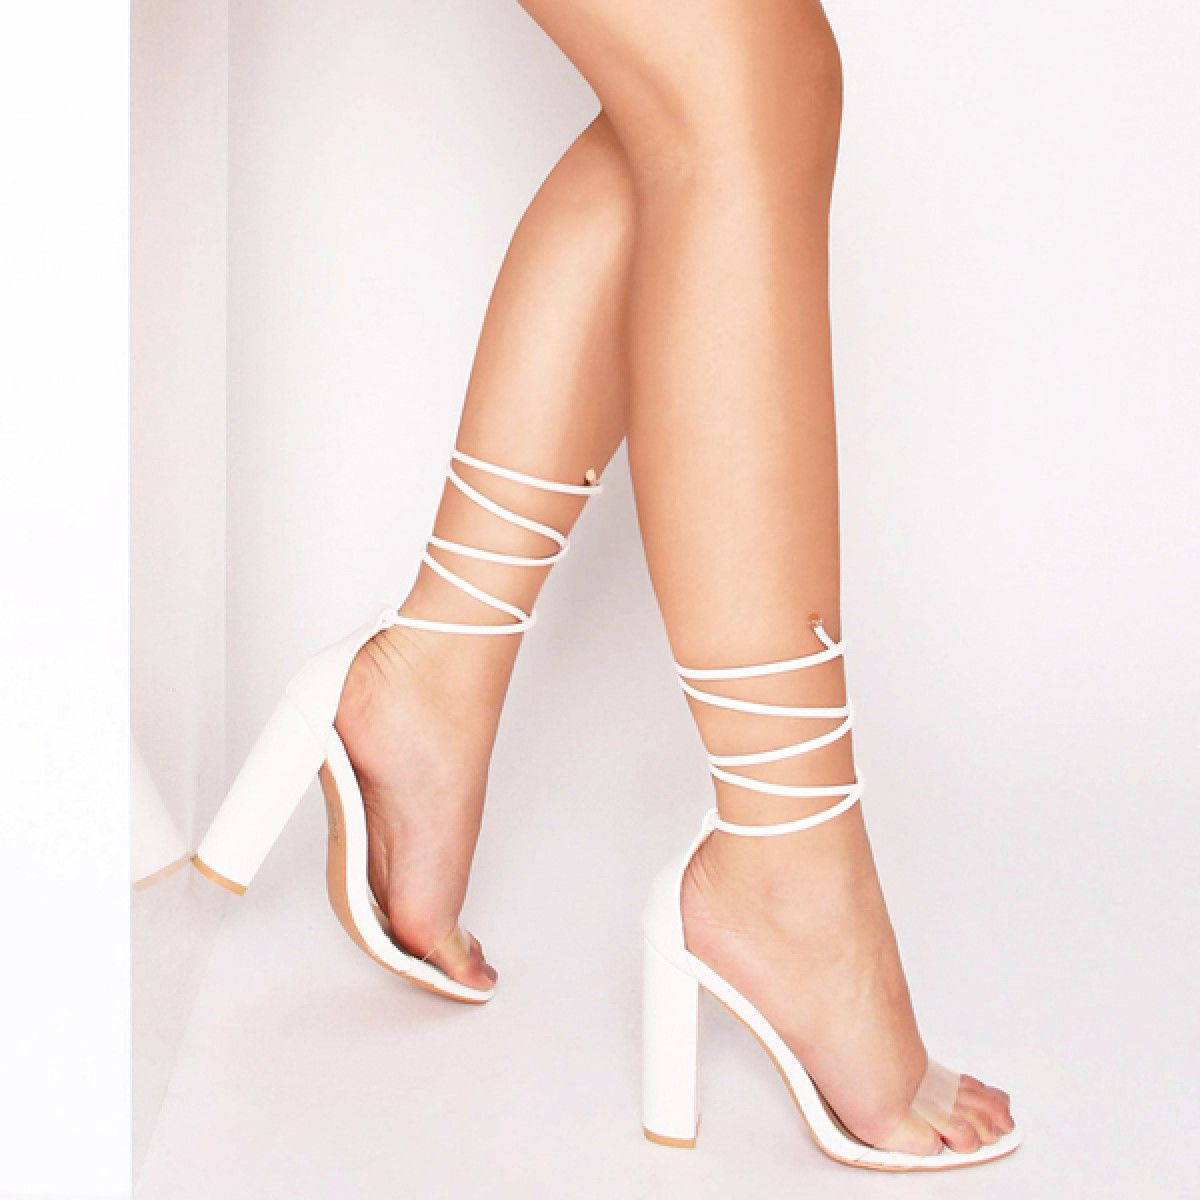 01f2d2aecb3 Harley White Transparent Lace Up Block Heels : Simmi Shoes | Shoes ...